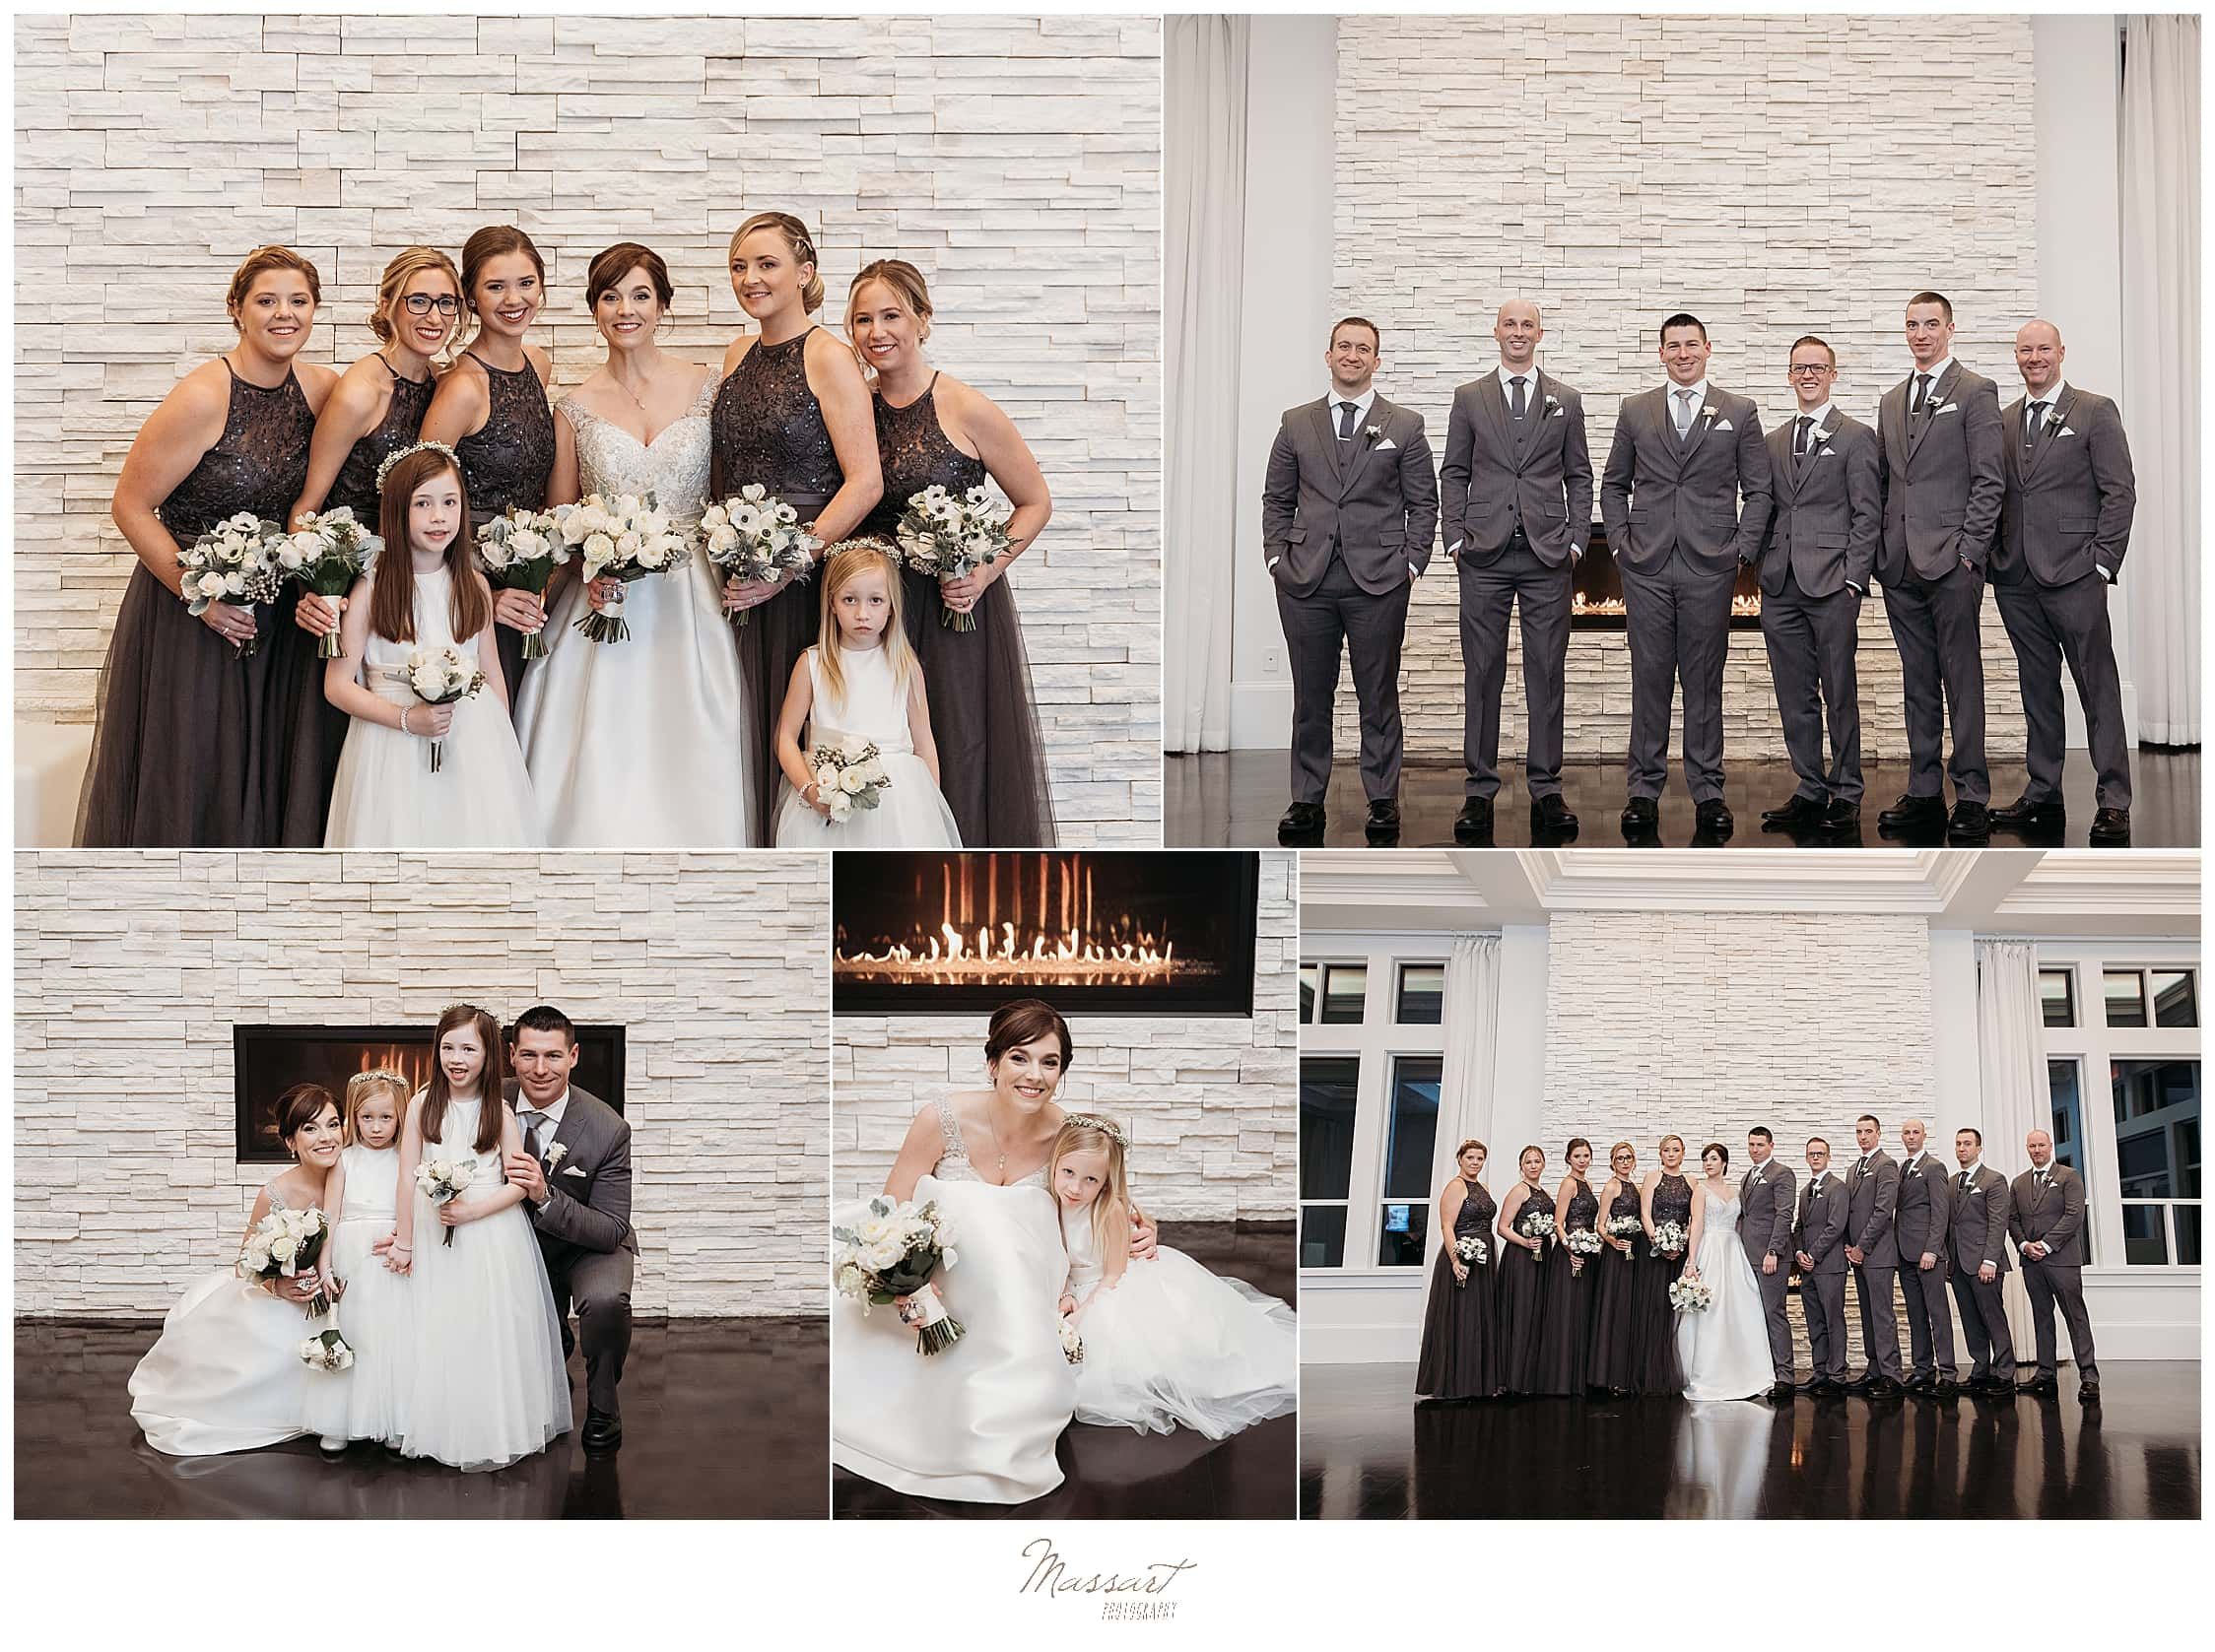 Foxboro MA wedding day bridal party portraits by Massart Photography